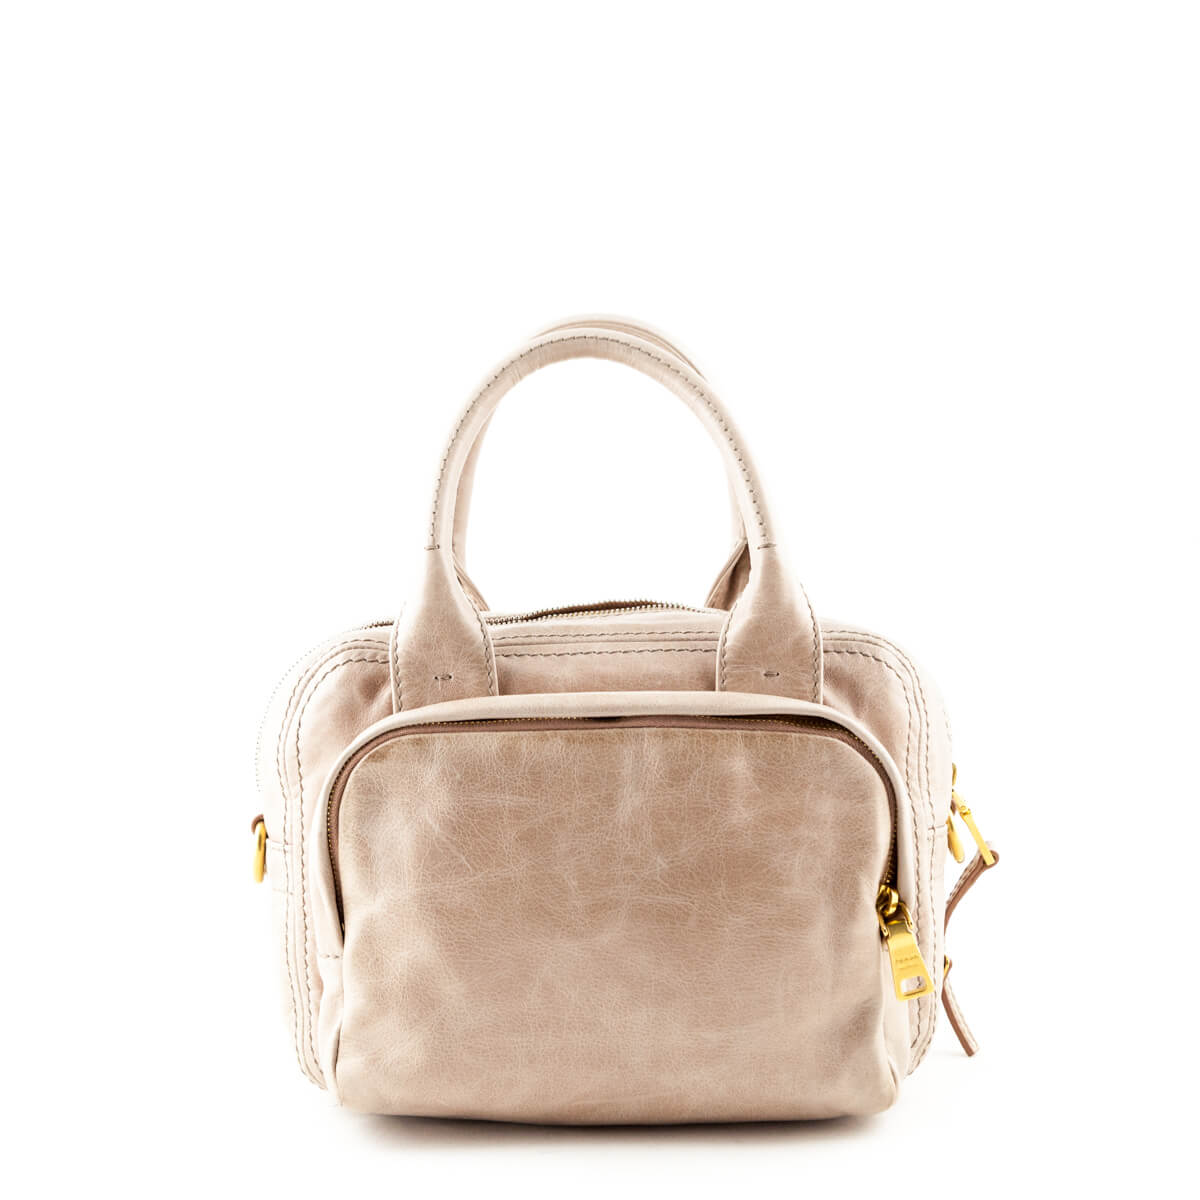 eb51c2304f ... Prada Blush Vitello Shine Satchel Bag - LOVE that BAG - Preowned  Authentic Designer Handbags ...